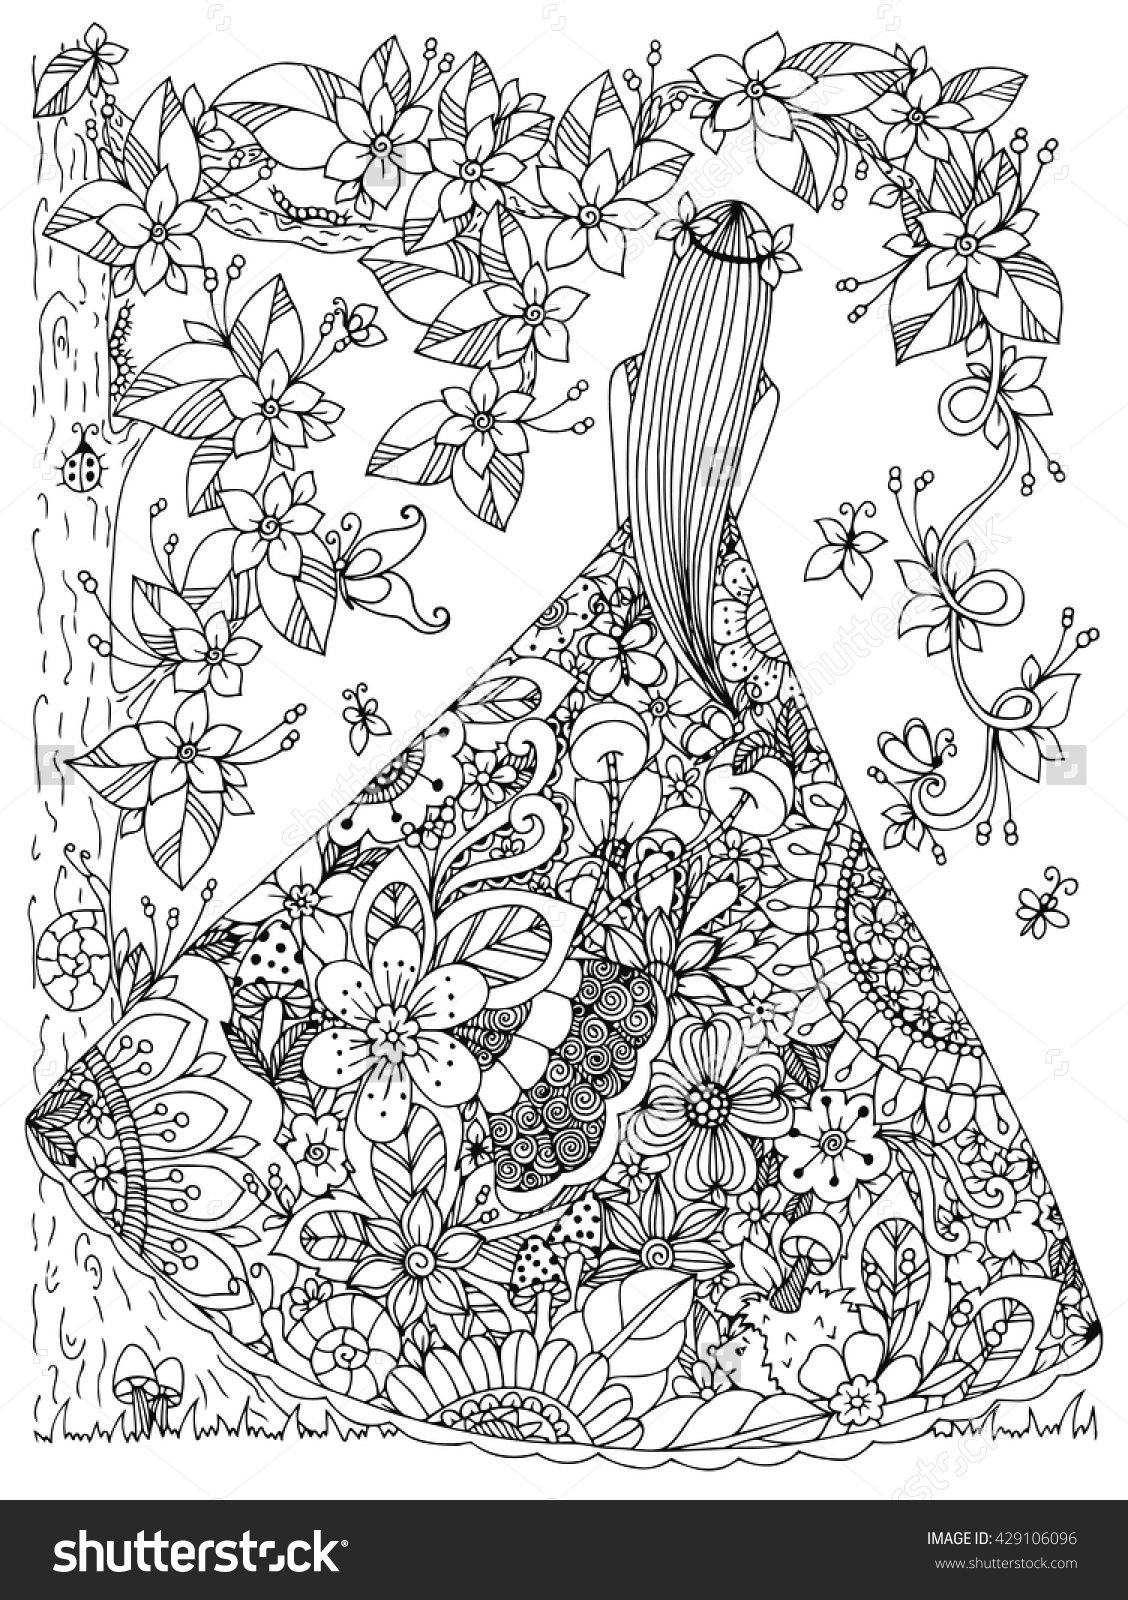 8+ Coloring pages ideas  coloring pages, coloring books